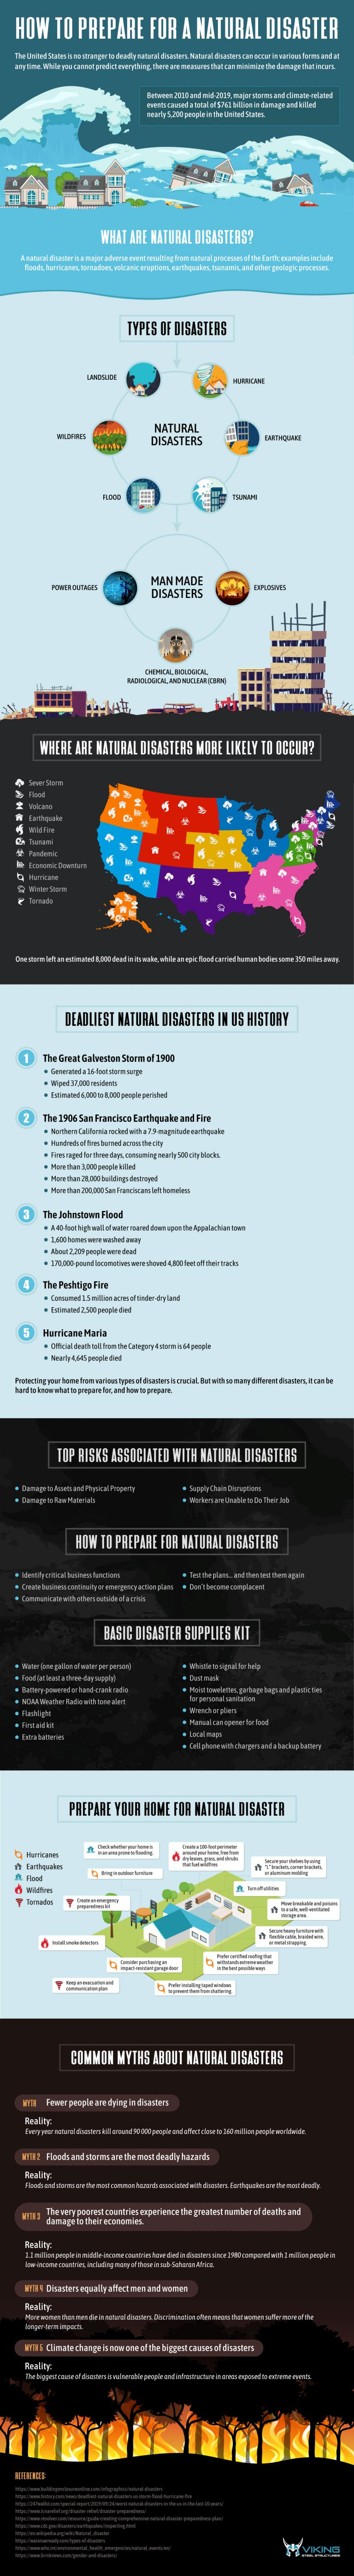 How To Prepare for a Natural Disaster [Infographic]